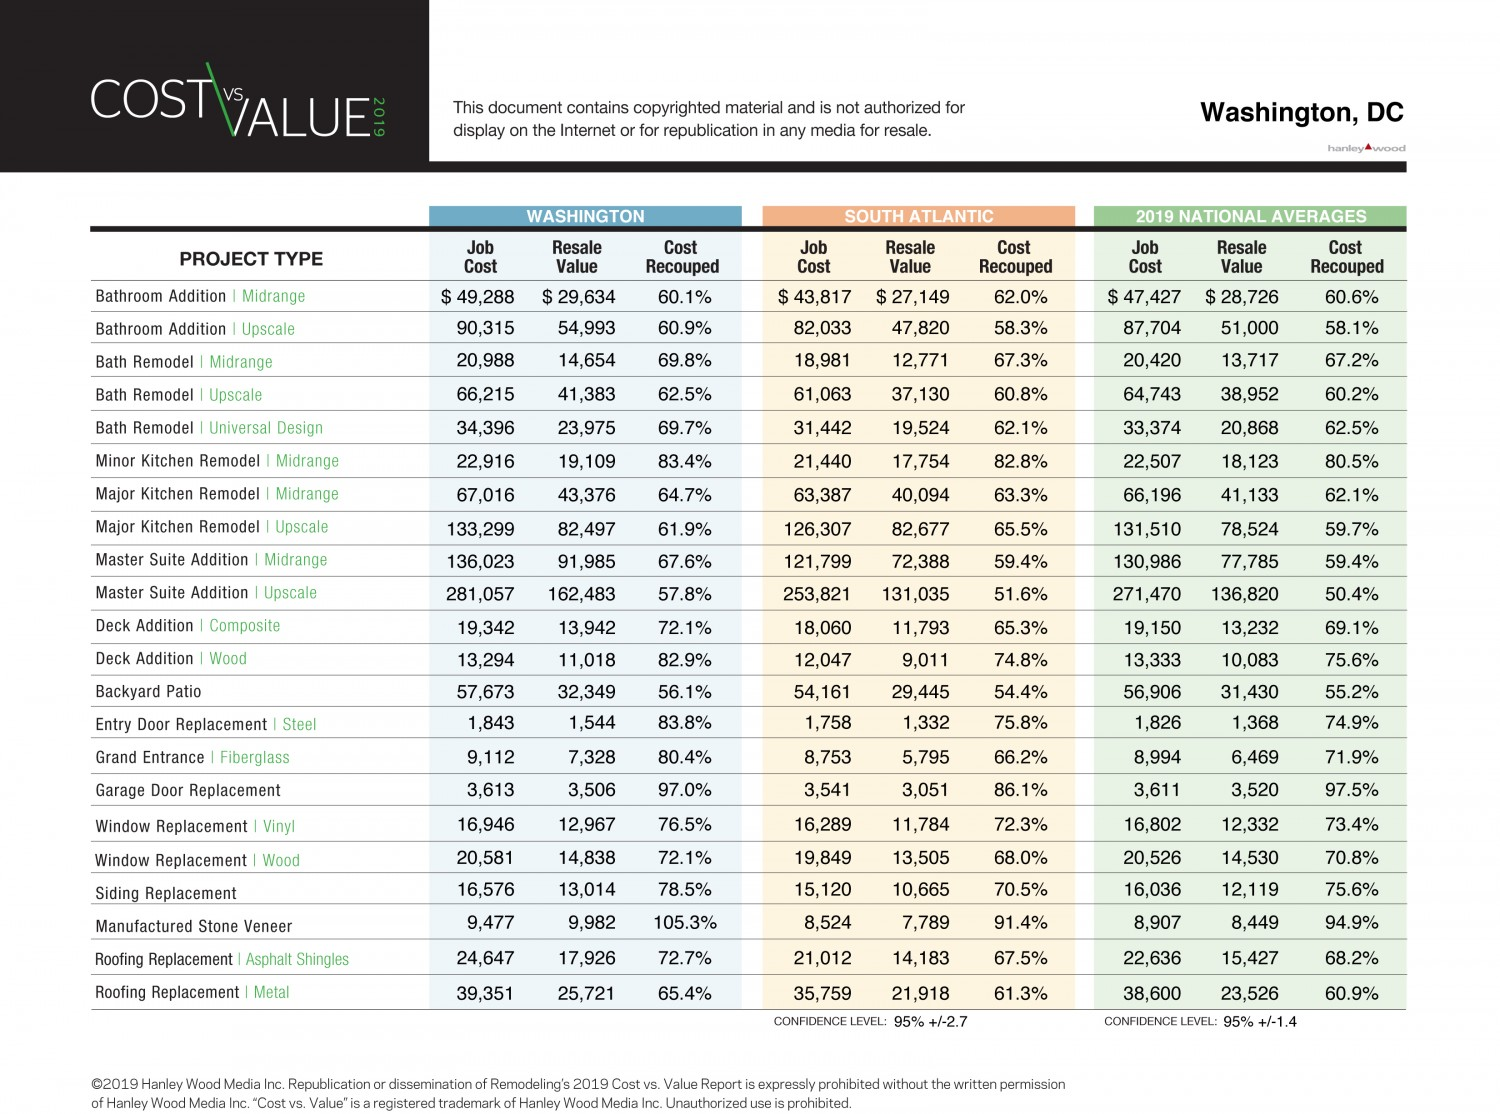 chart for projected home remodeling ROI, by project type (Washington, DC)